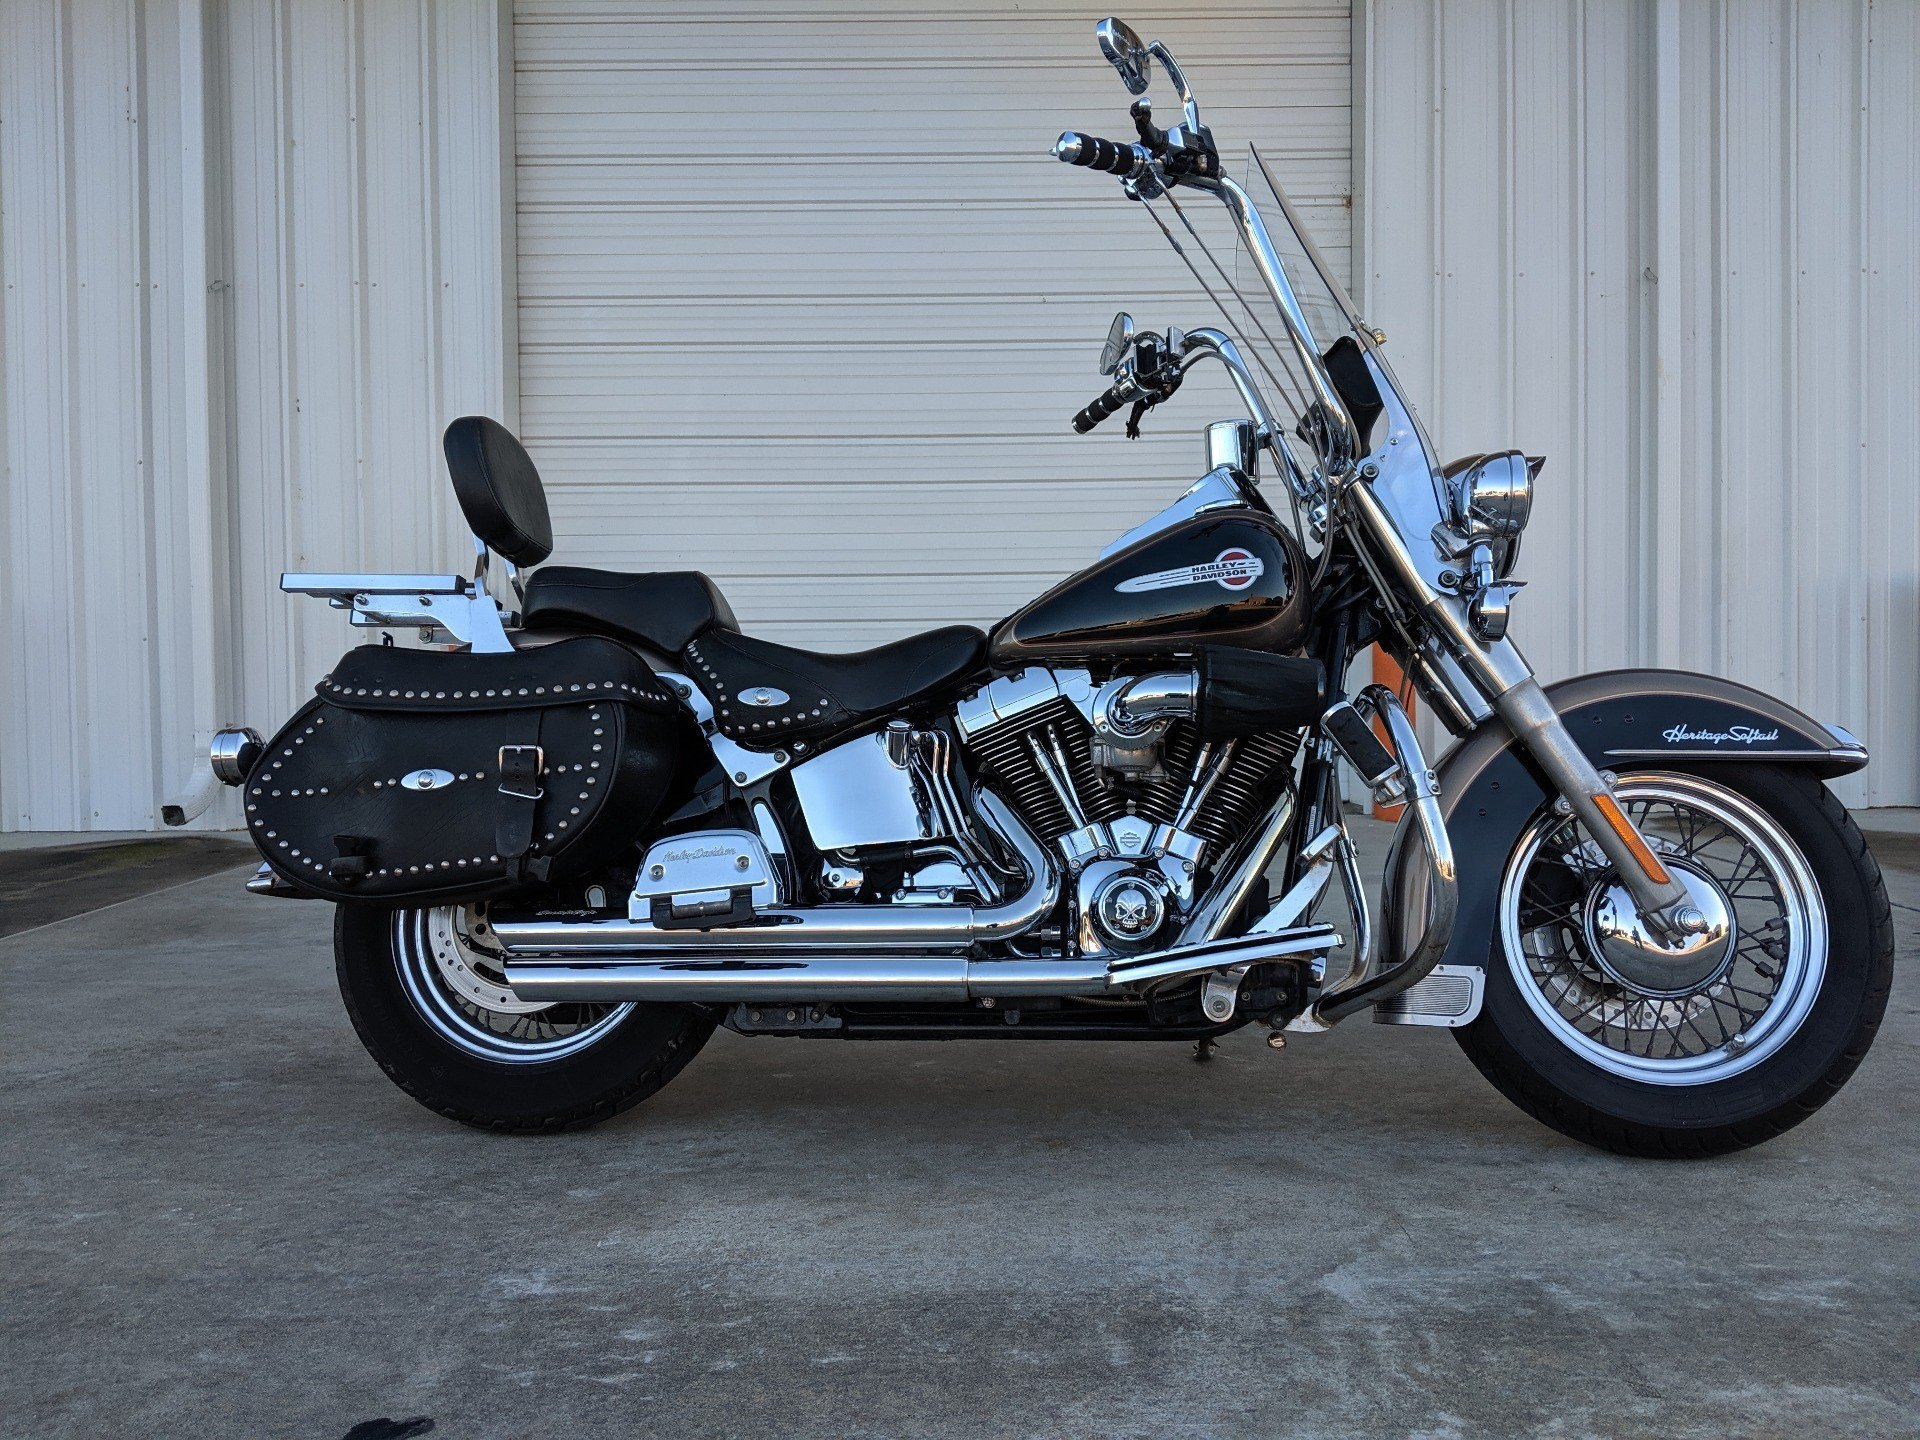 2004 Harley-Davidson FLSTC/FLSTCI Heritage Softail® Classic in Monroe, Louisiana - Photo 1